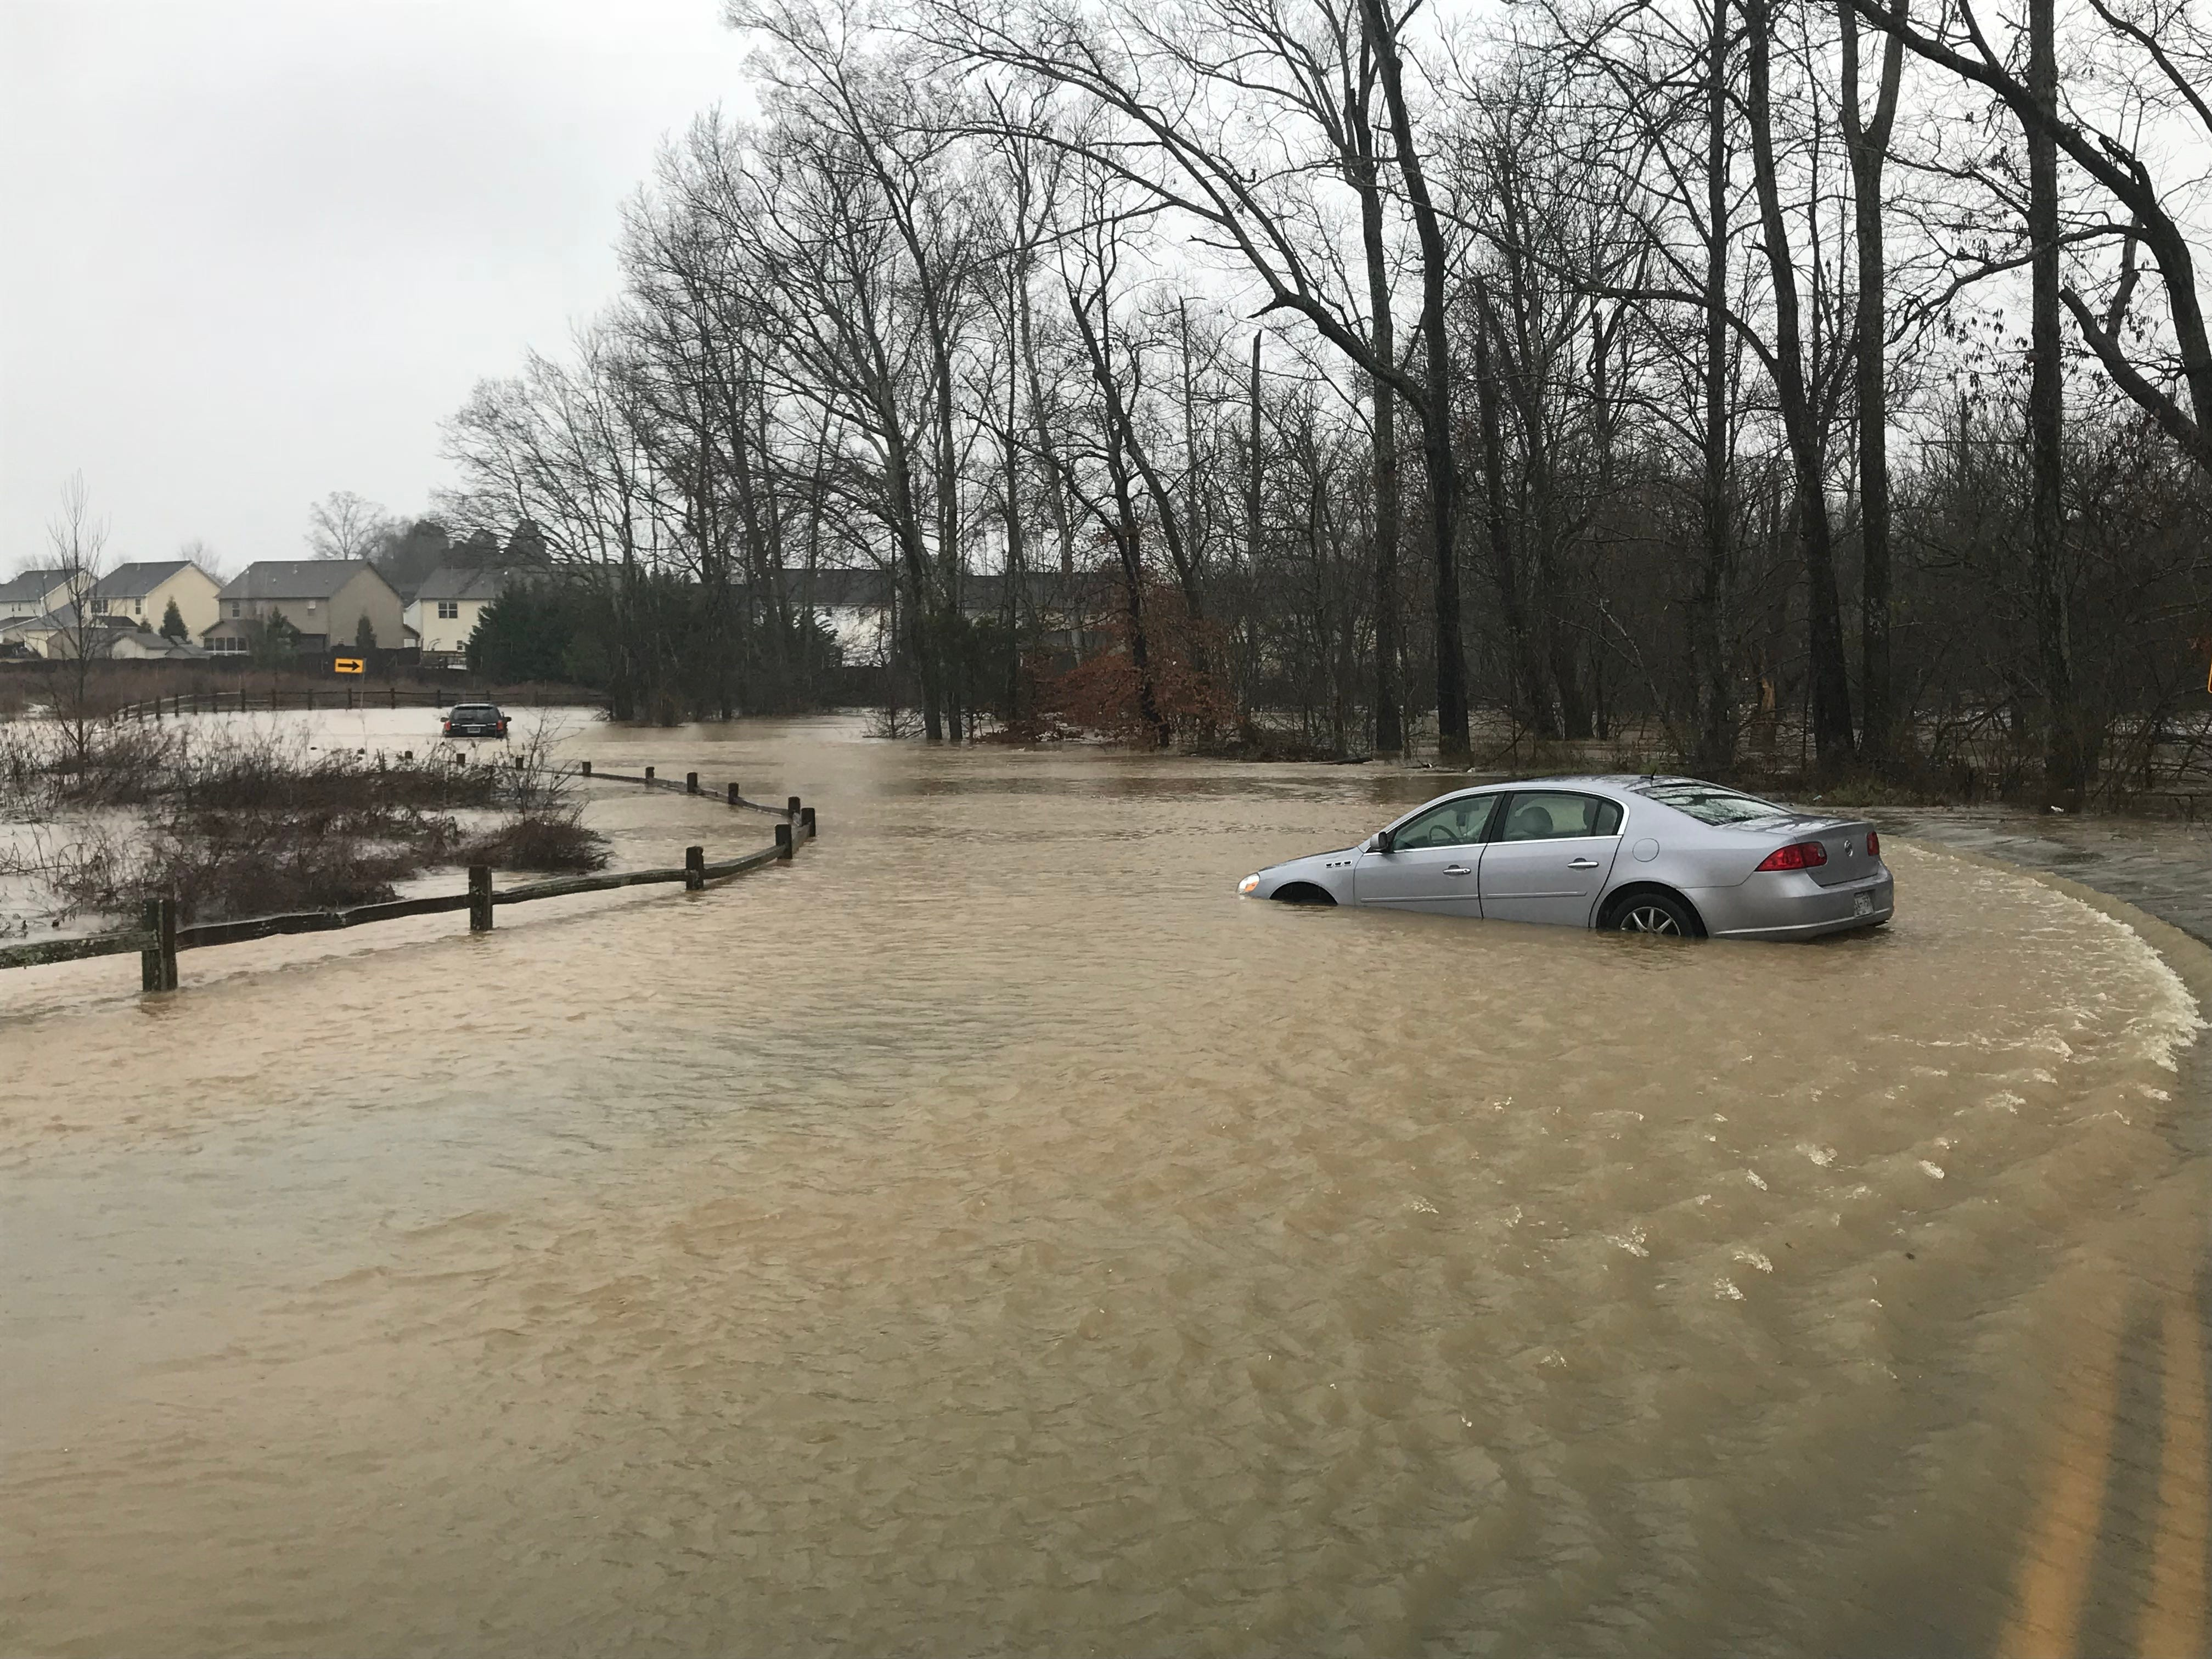 Brenda Colbert's Buick Lucerne (right) became trapped in floodwaters Saturday on Harrell Road in Knoxville. She was rescue by the Karns Fire Department on Feb. 23, 2019.